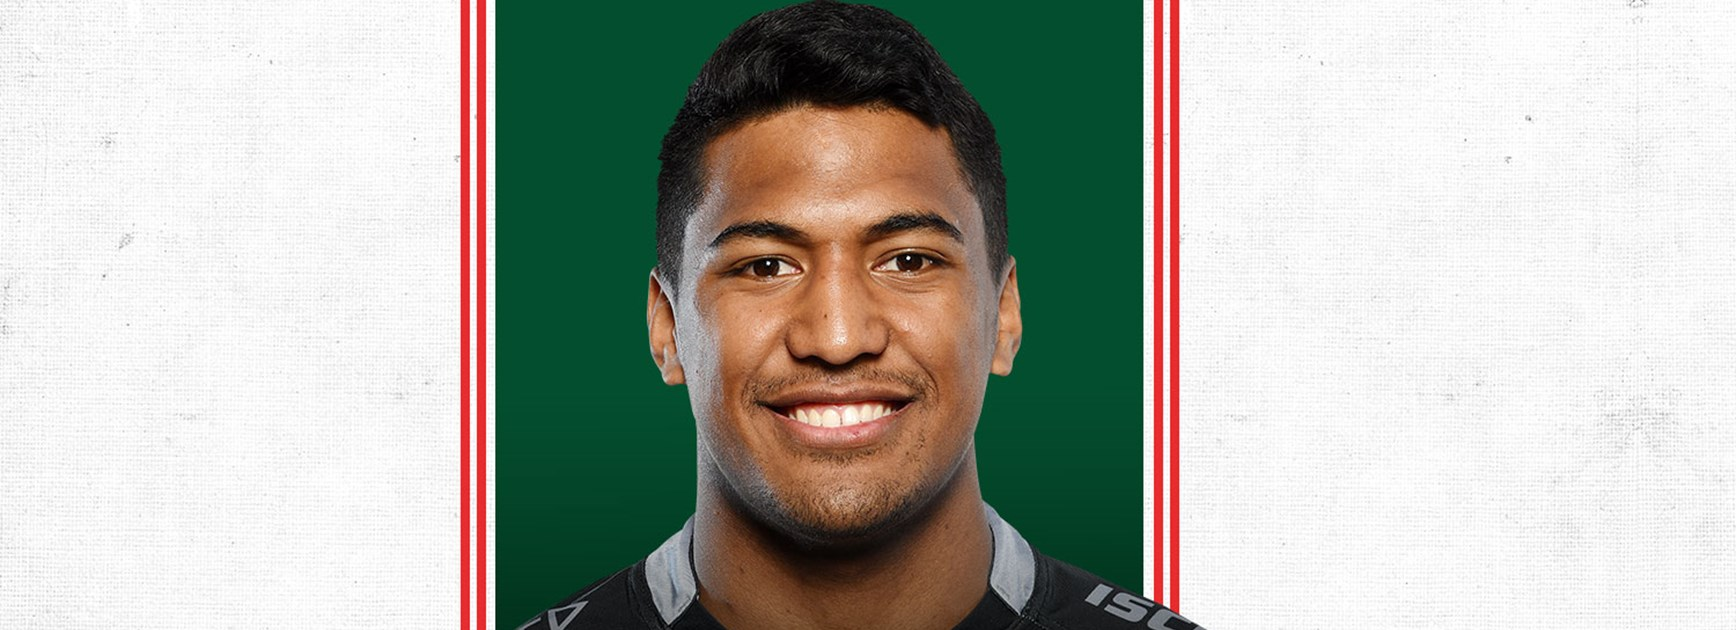 Rabbitohs sign Steven Marsters for the 2020 season